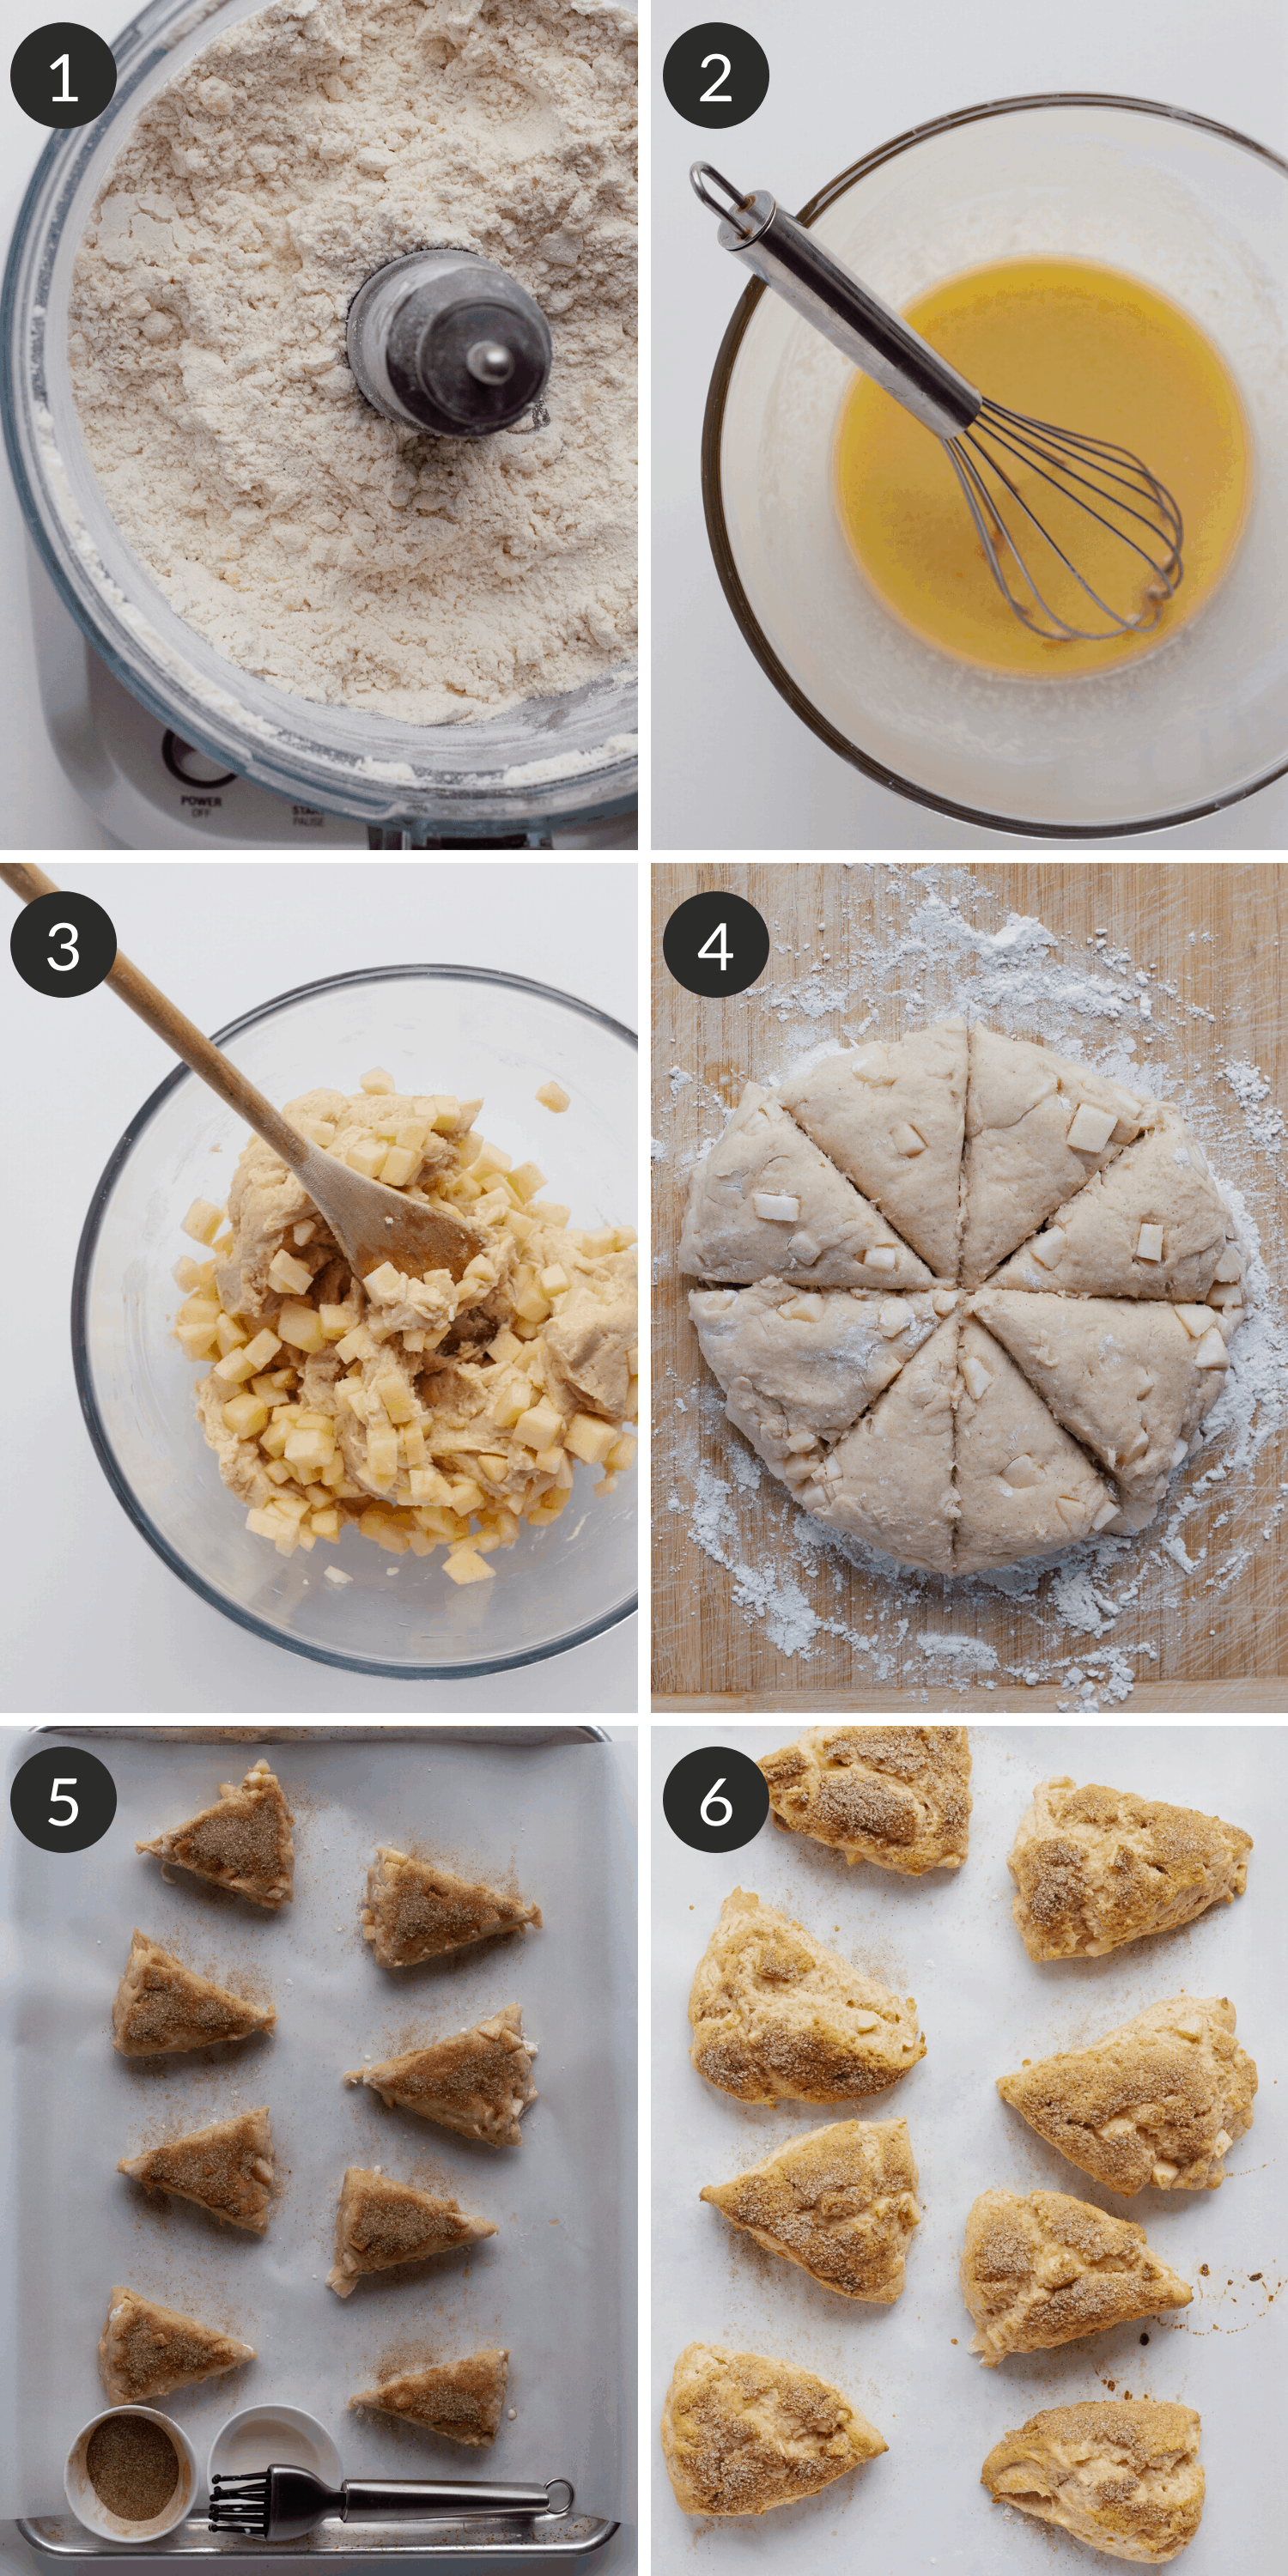 A collage of 6 process pictures showing how to make apple cinnamon scones.